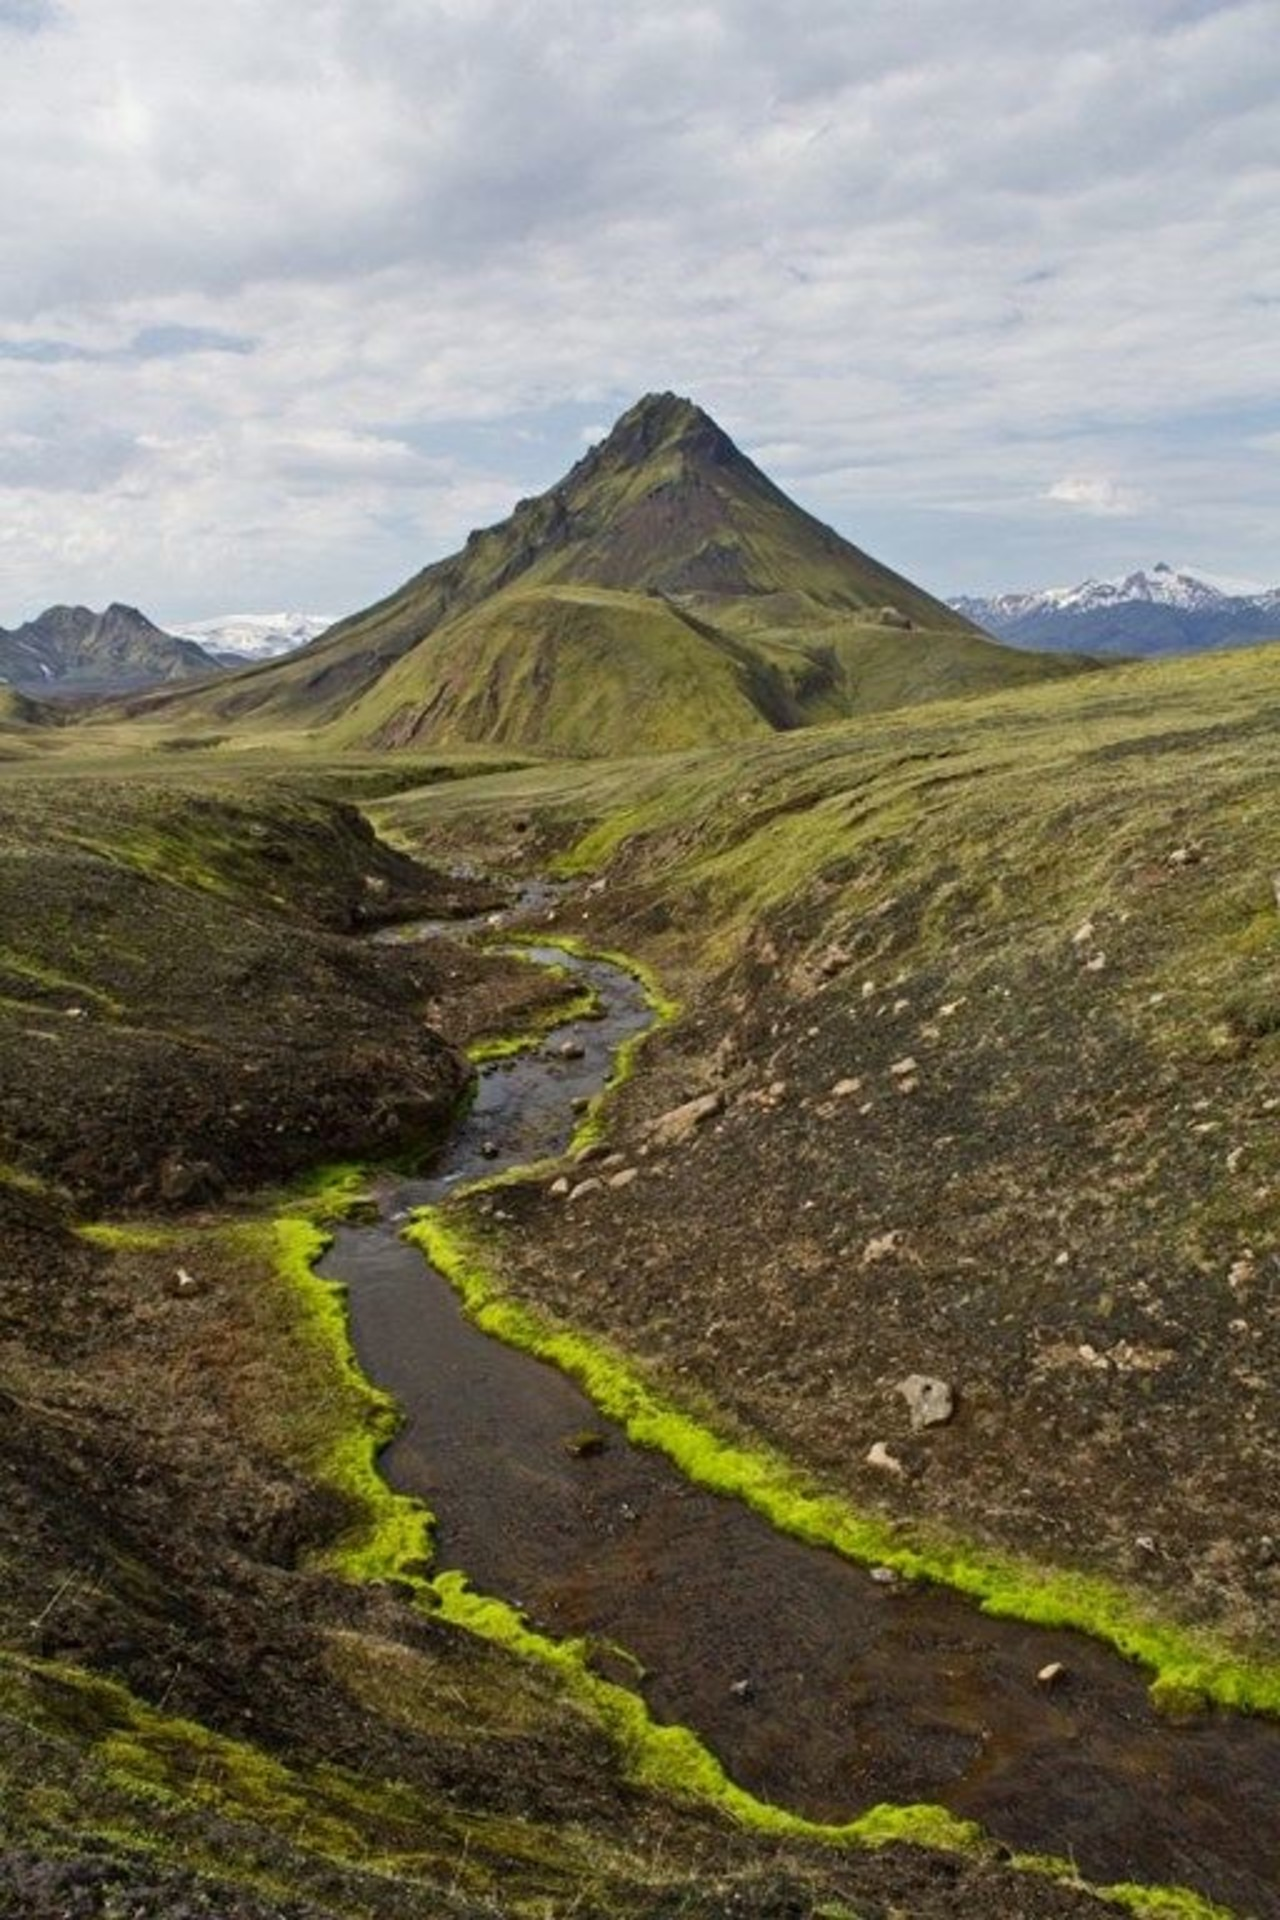 A small river and a mountain in a green landscape on the Laugavegur trek